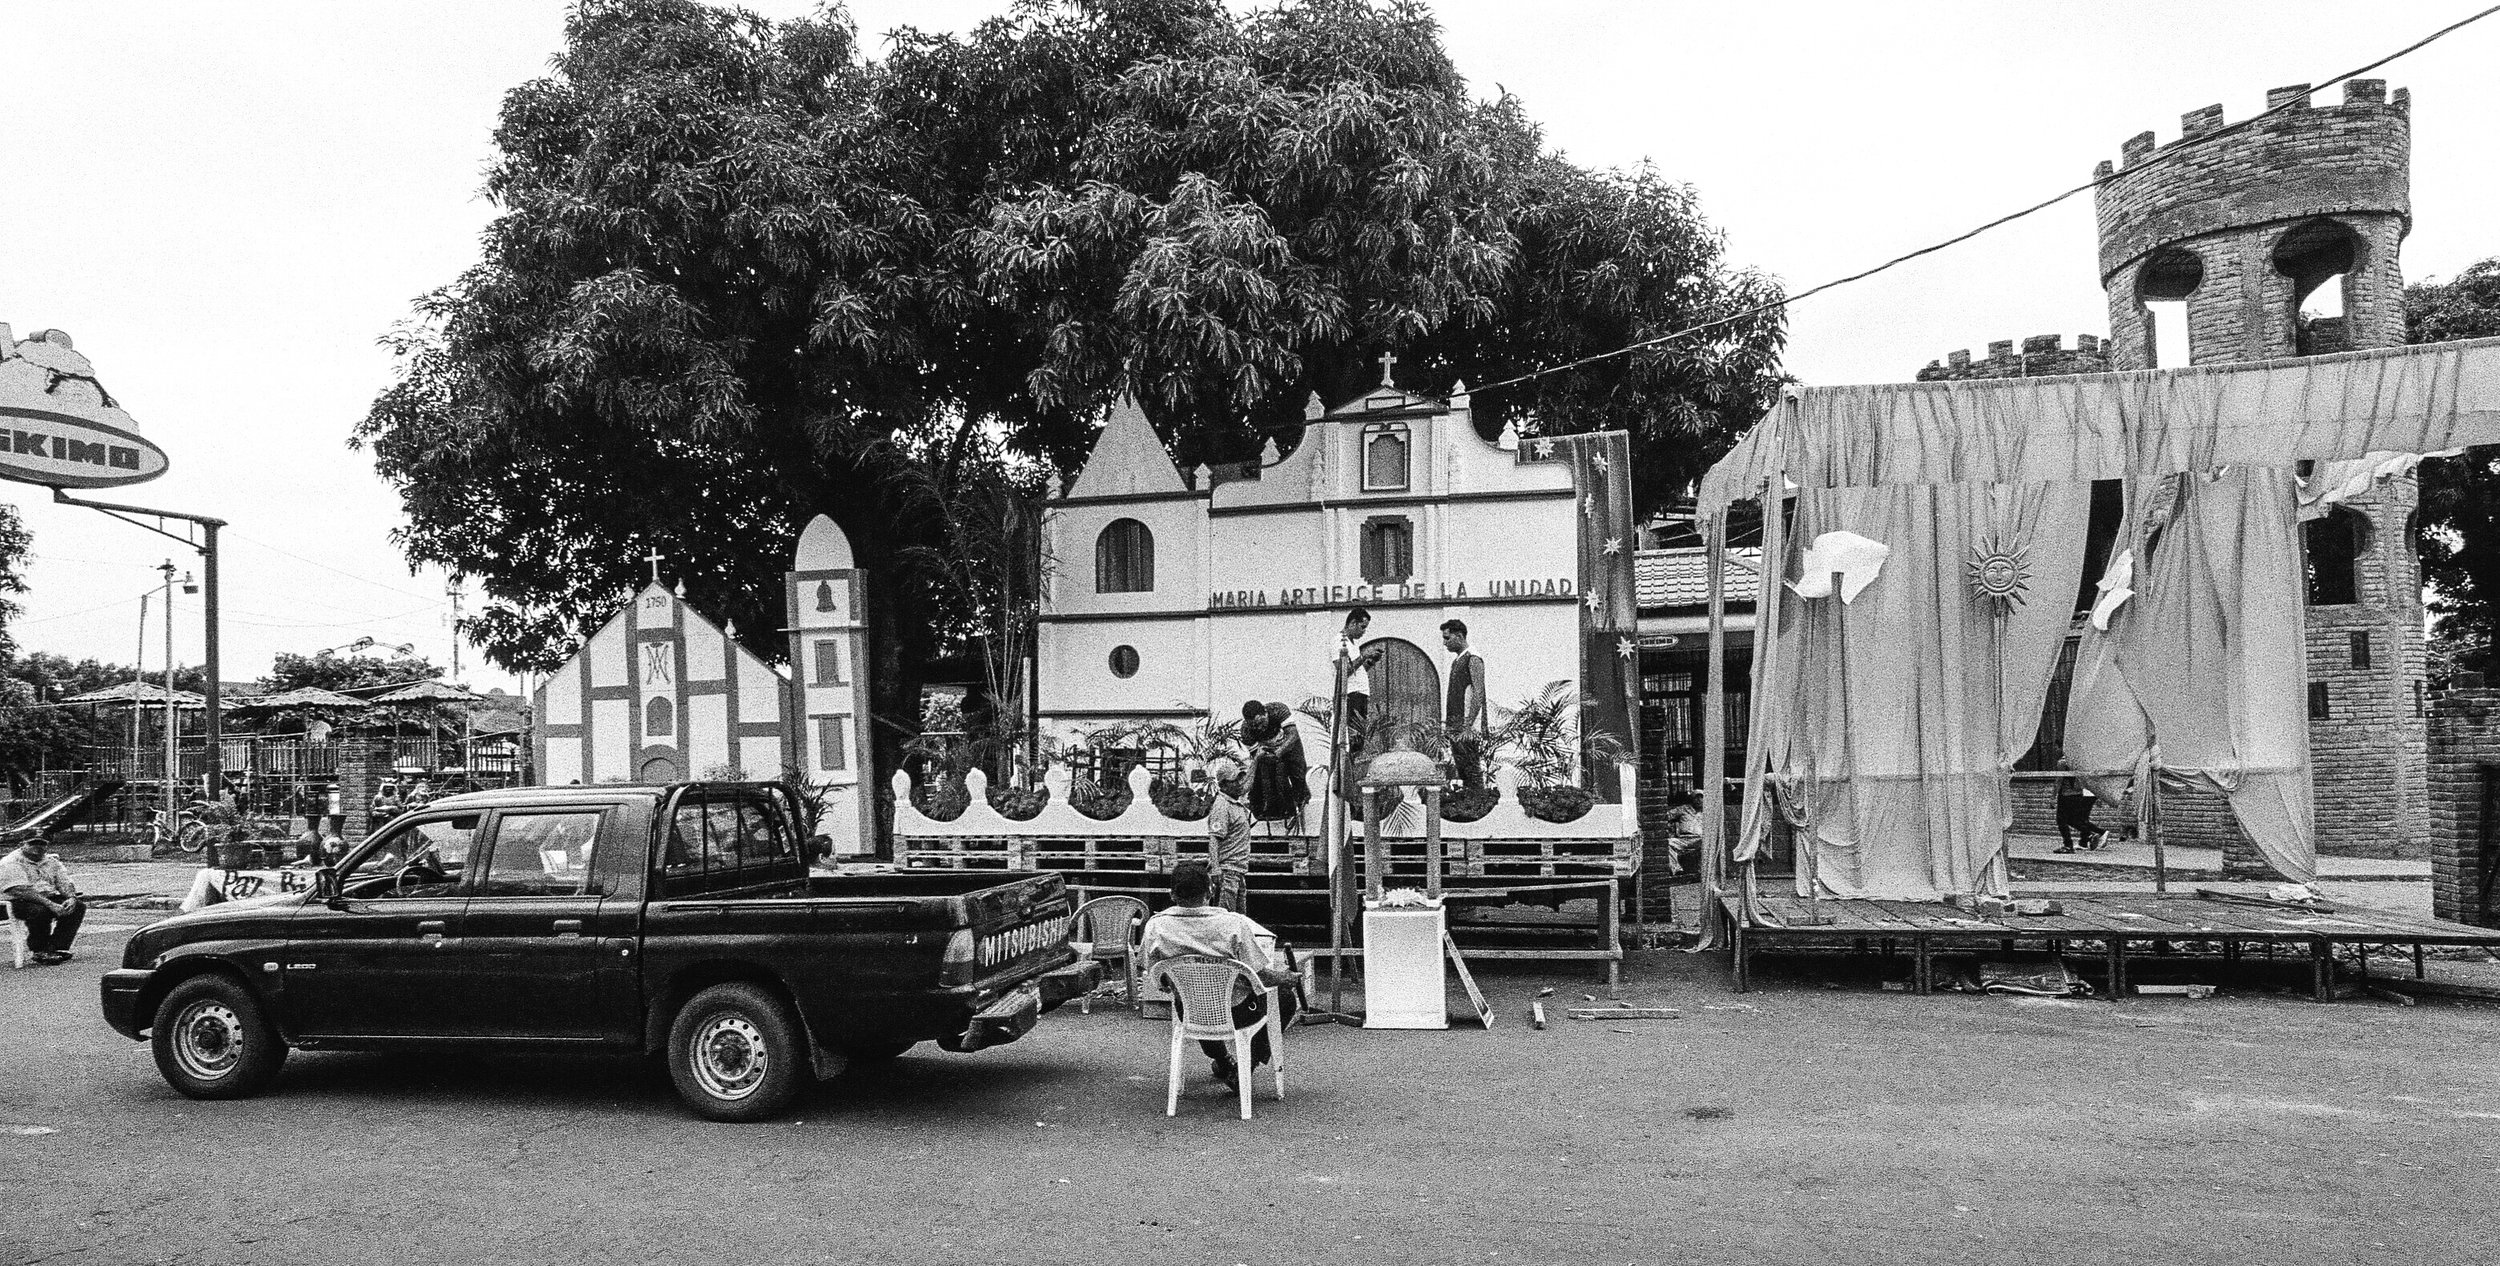 Float being prepared for an upcoming parade, Chinandega plaza. Surprisingly the entire plaza had free wi-fi available. Nikon F2, Ilford HP5+